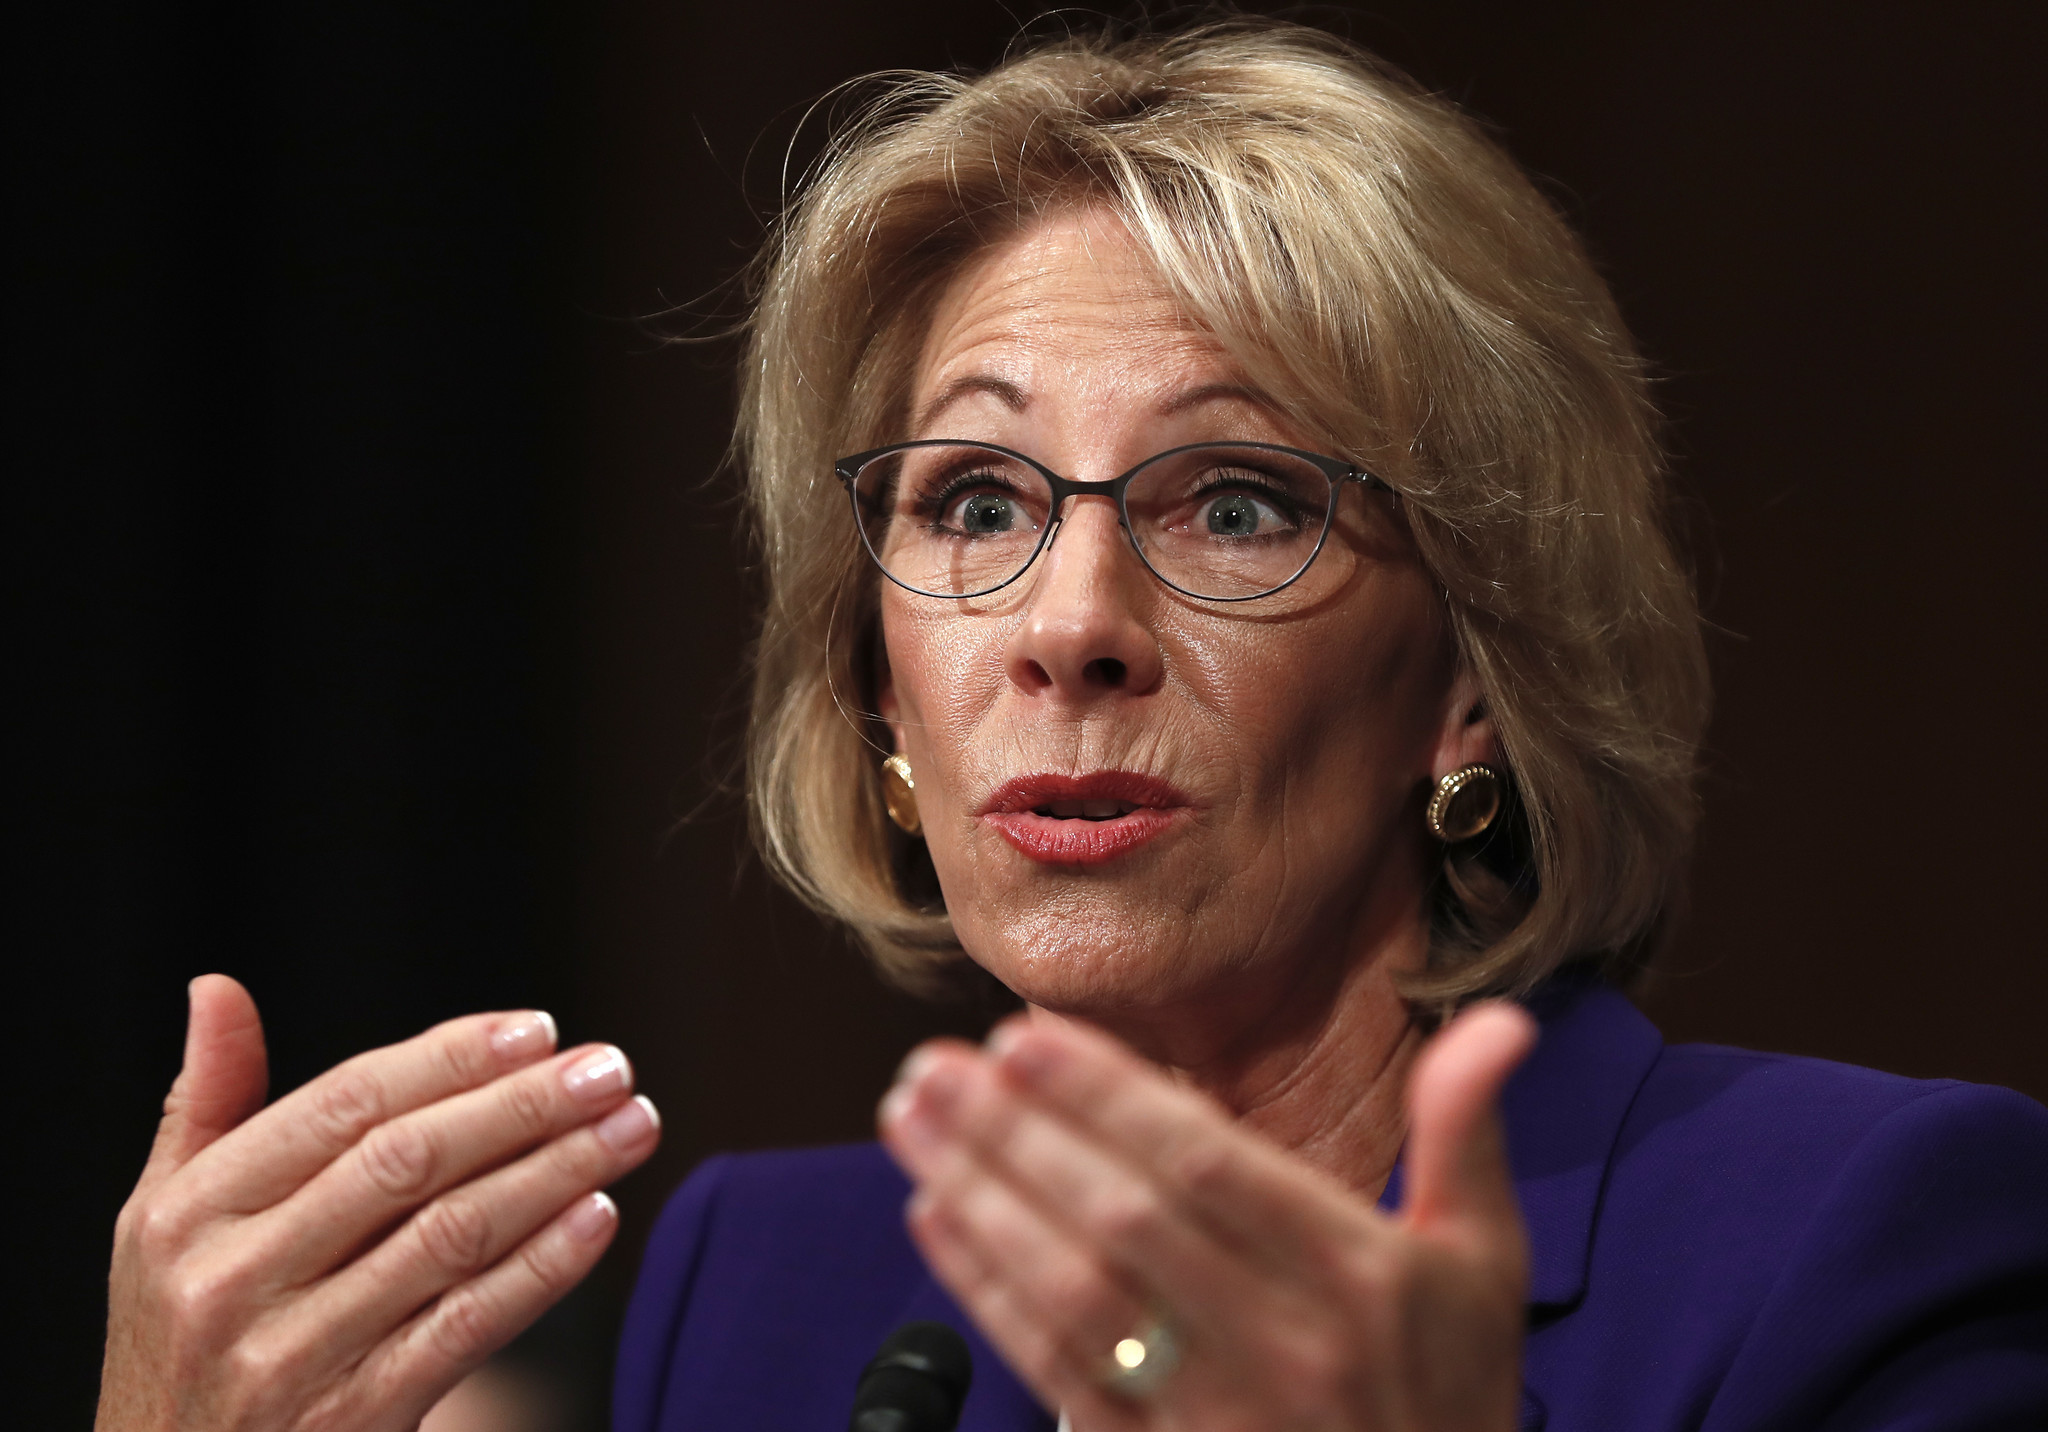 Betsy DeVos embarrassed herself and should be rejected by the Senate